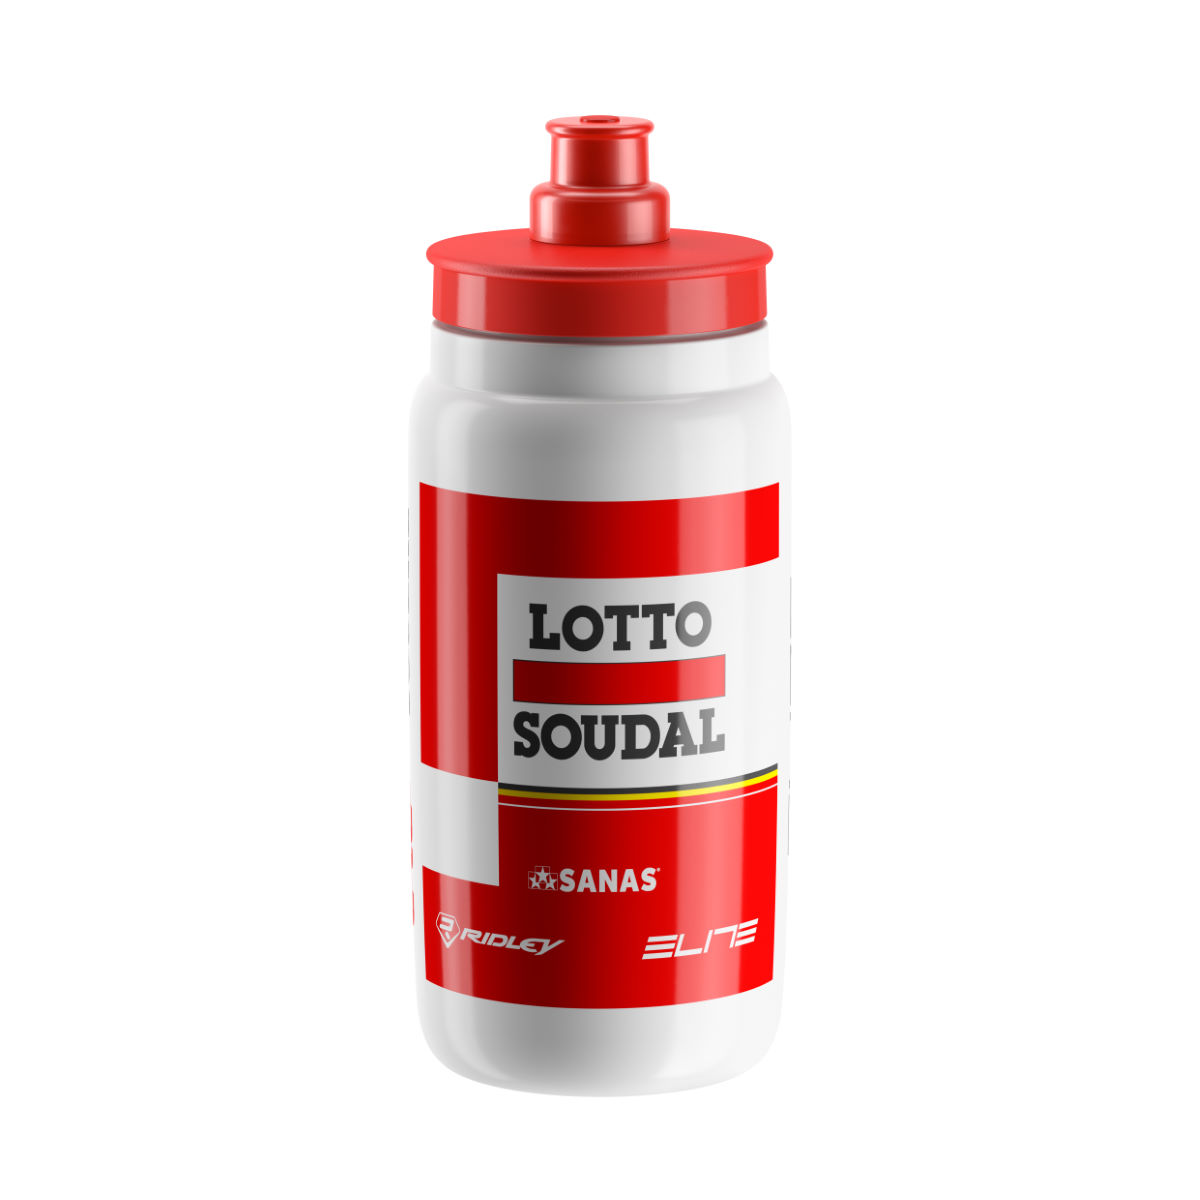 Elite Fly Lotto Soudal 2017 - One Size White/red Bidons